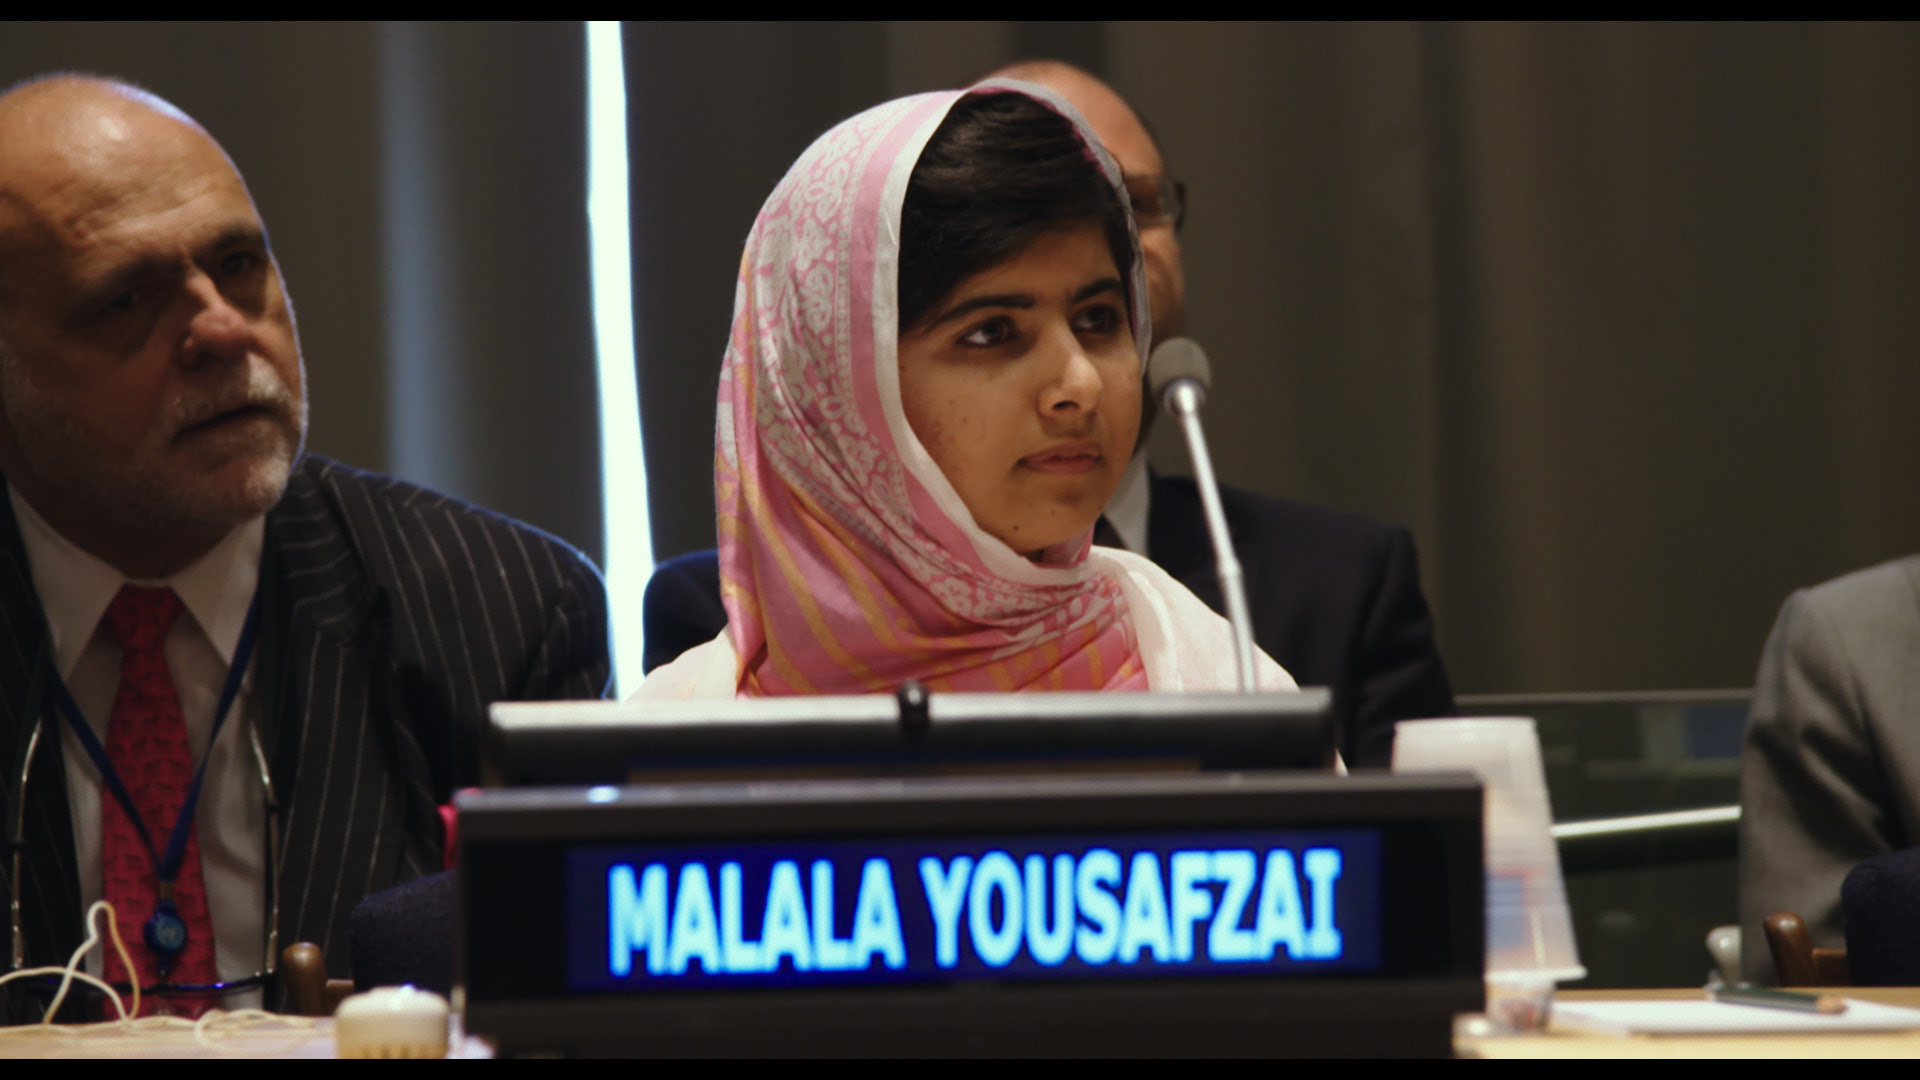 Malala Yousafzai at the United Nations General Assembly in New York City.